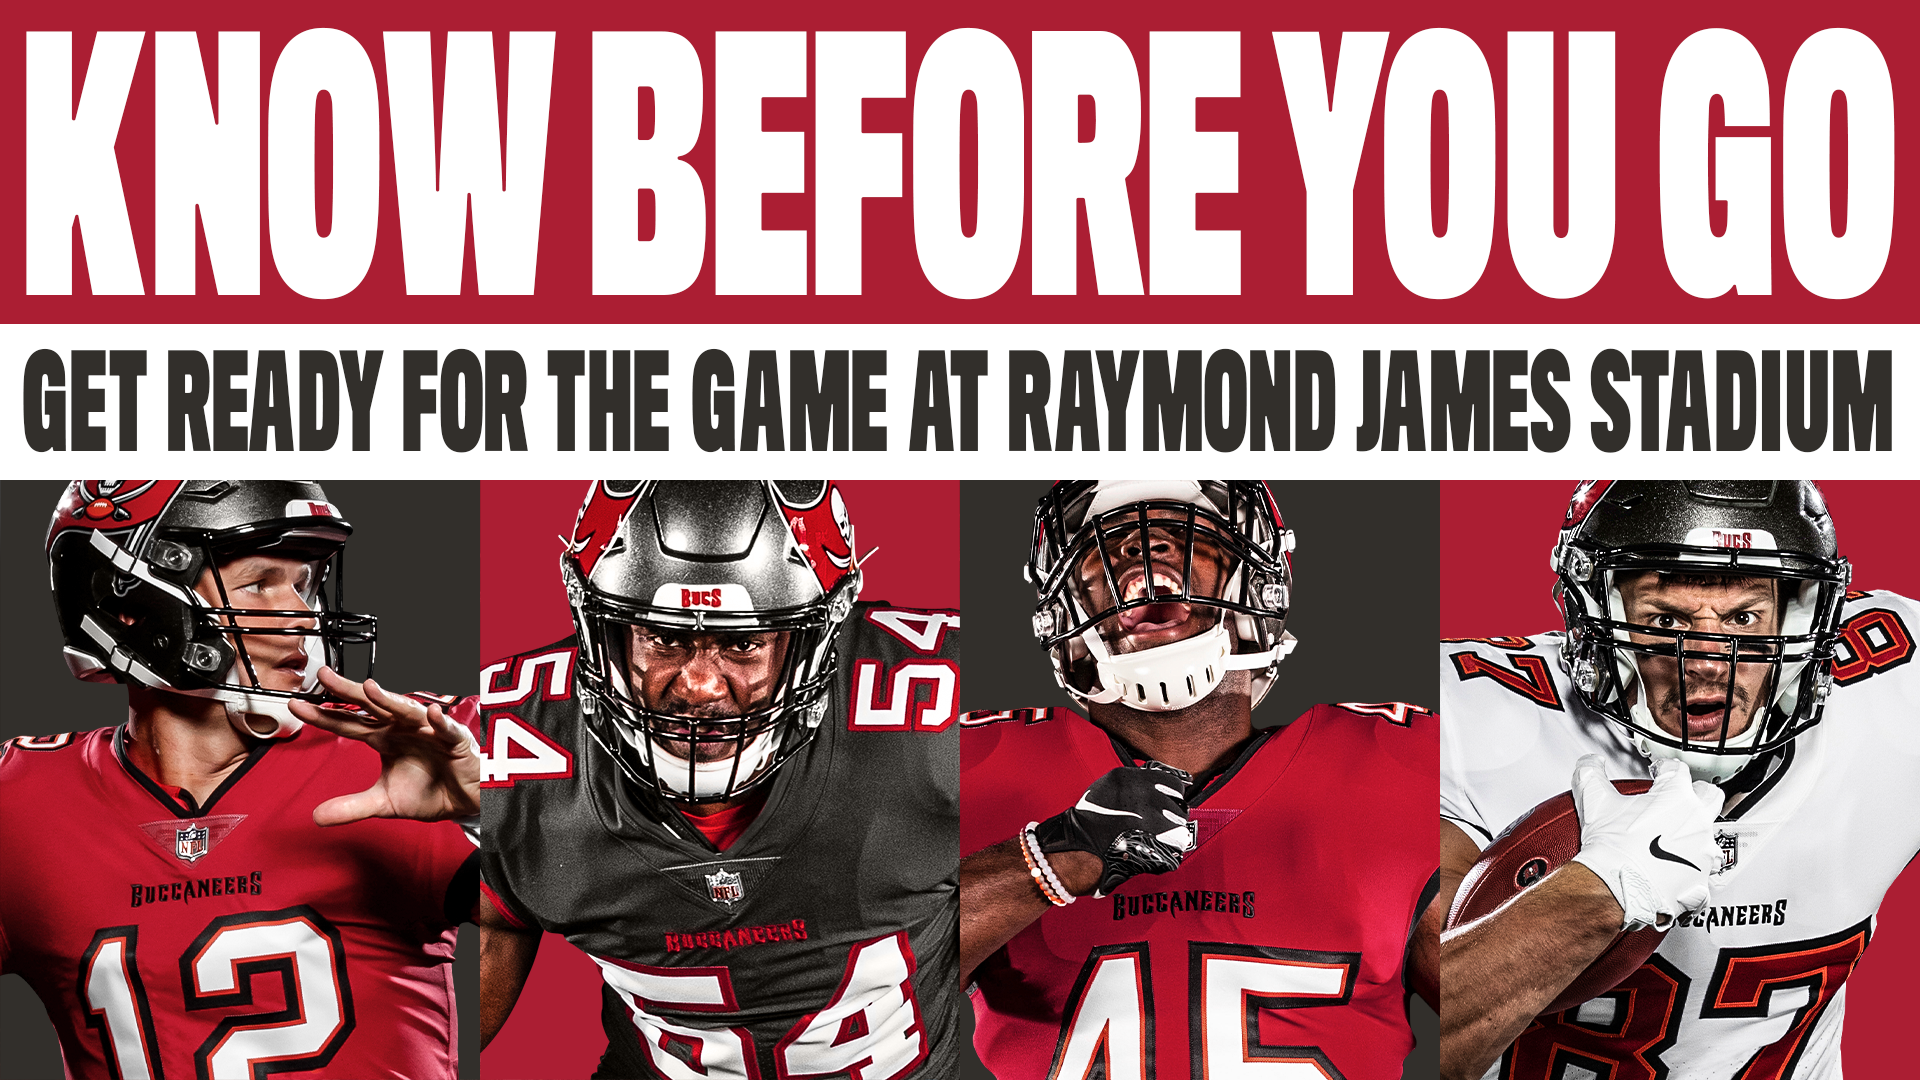 tampa bay buccaneers raymond james stadium tampa bay buccaneers raymond james